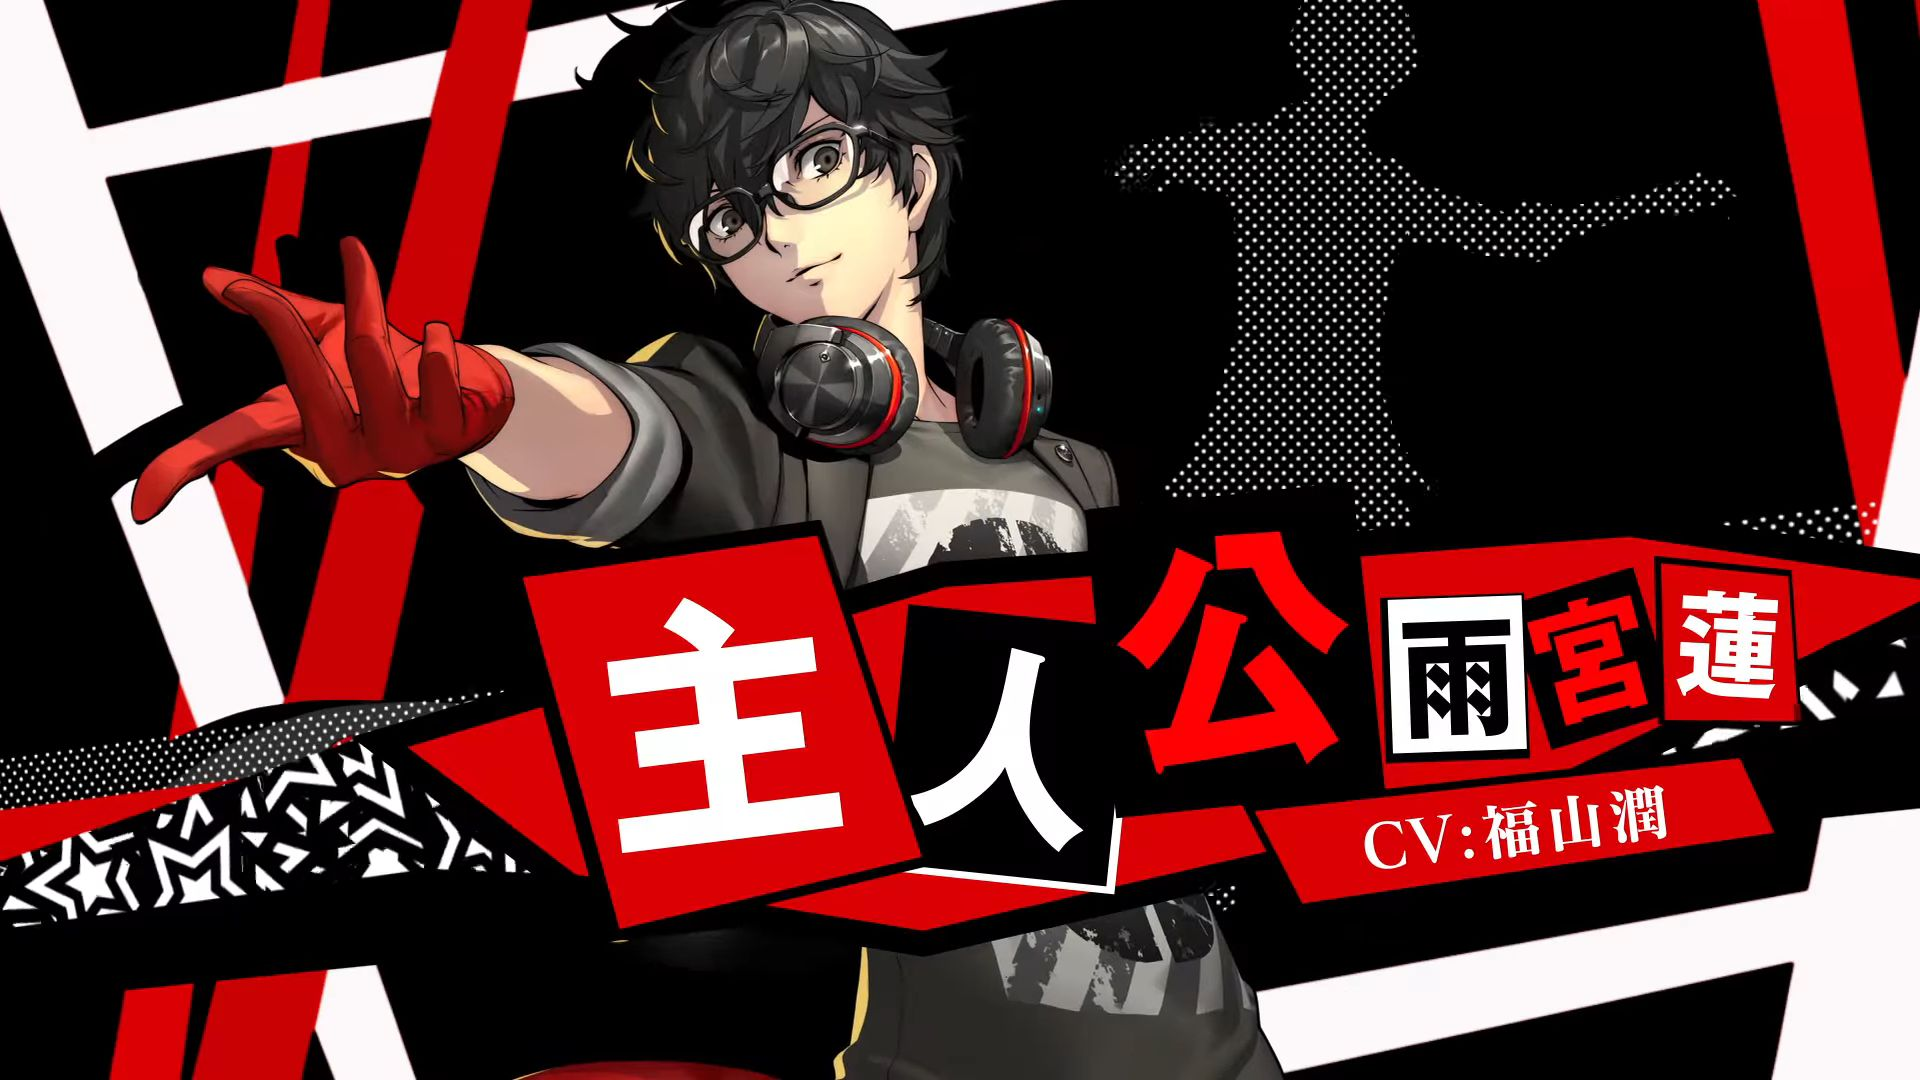 Persona 5 Dancing Star Night And 3 Dancing Moon Night Gets New